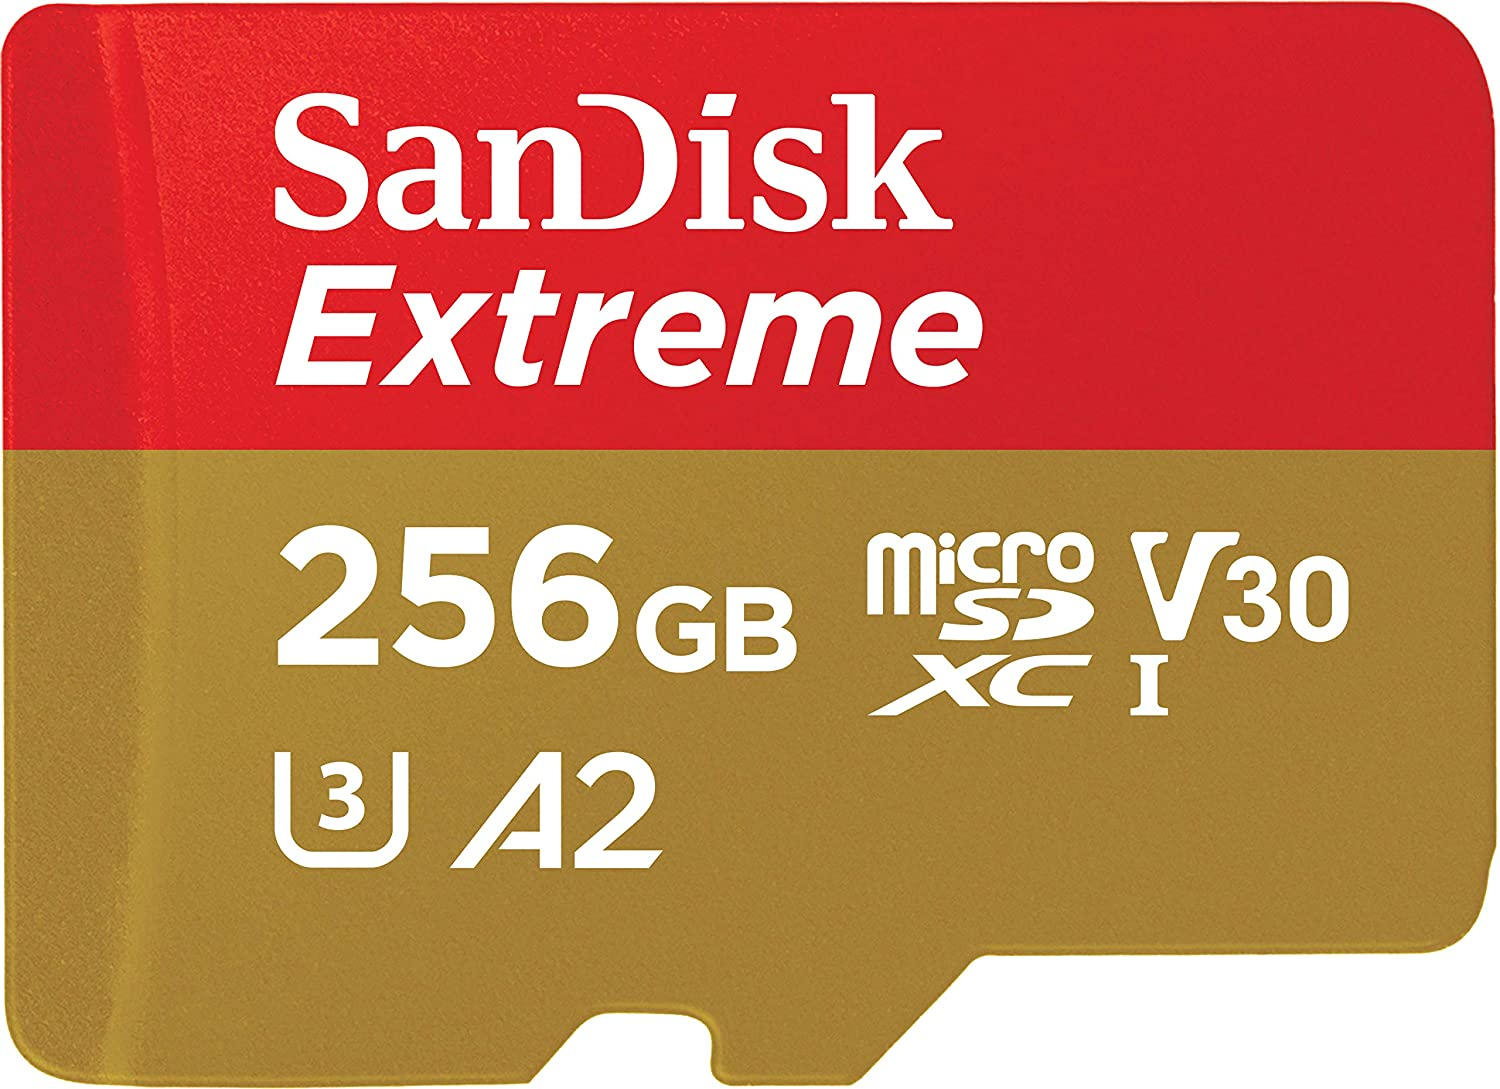 SanDisk 256GB Extreme microSDXC UHS-I Memory Card with Adapter - C10, U3, V30, 4K, A2, Micro SD